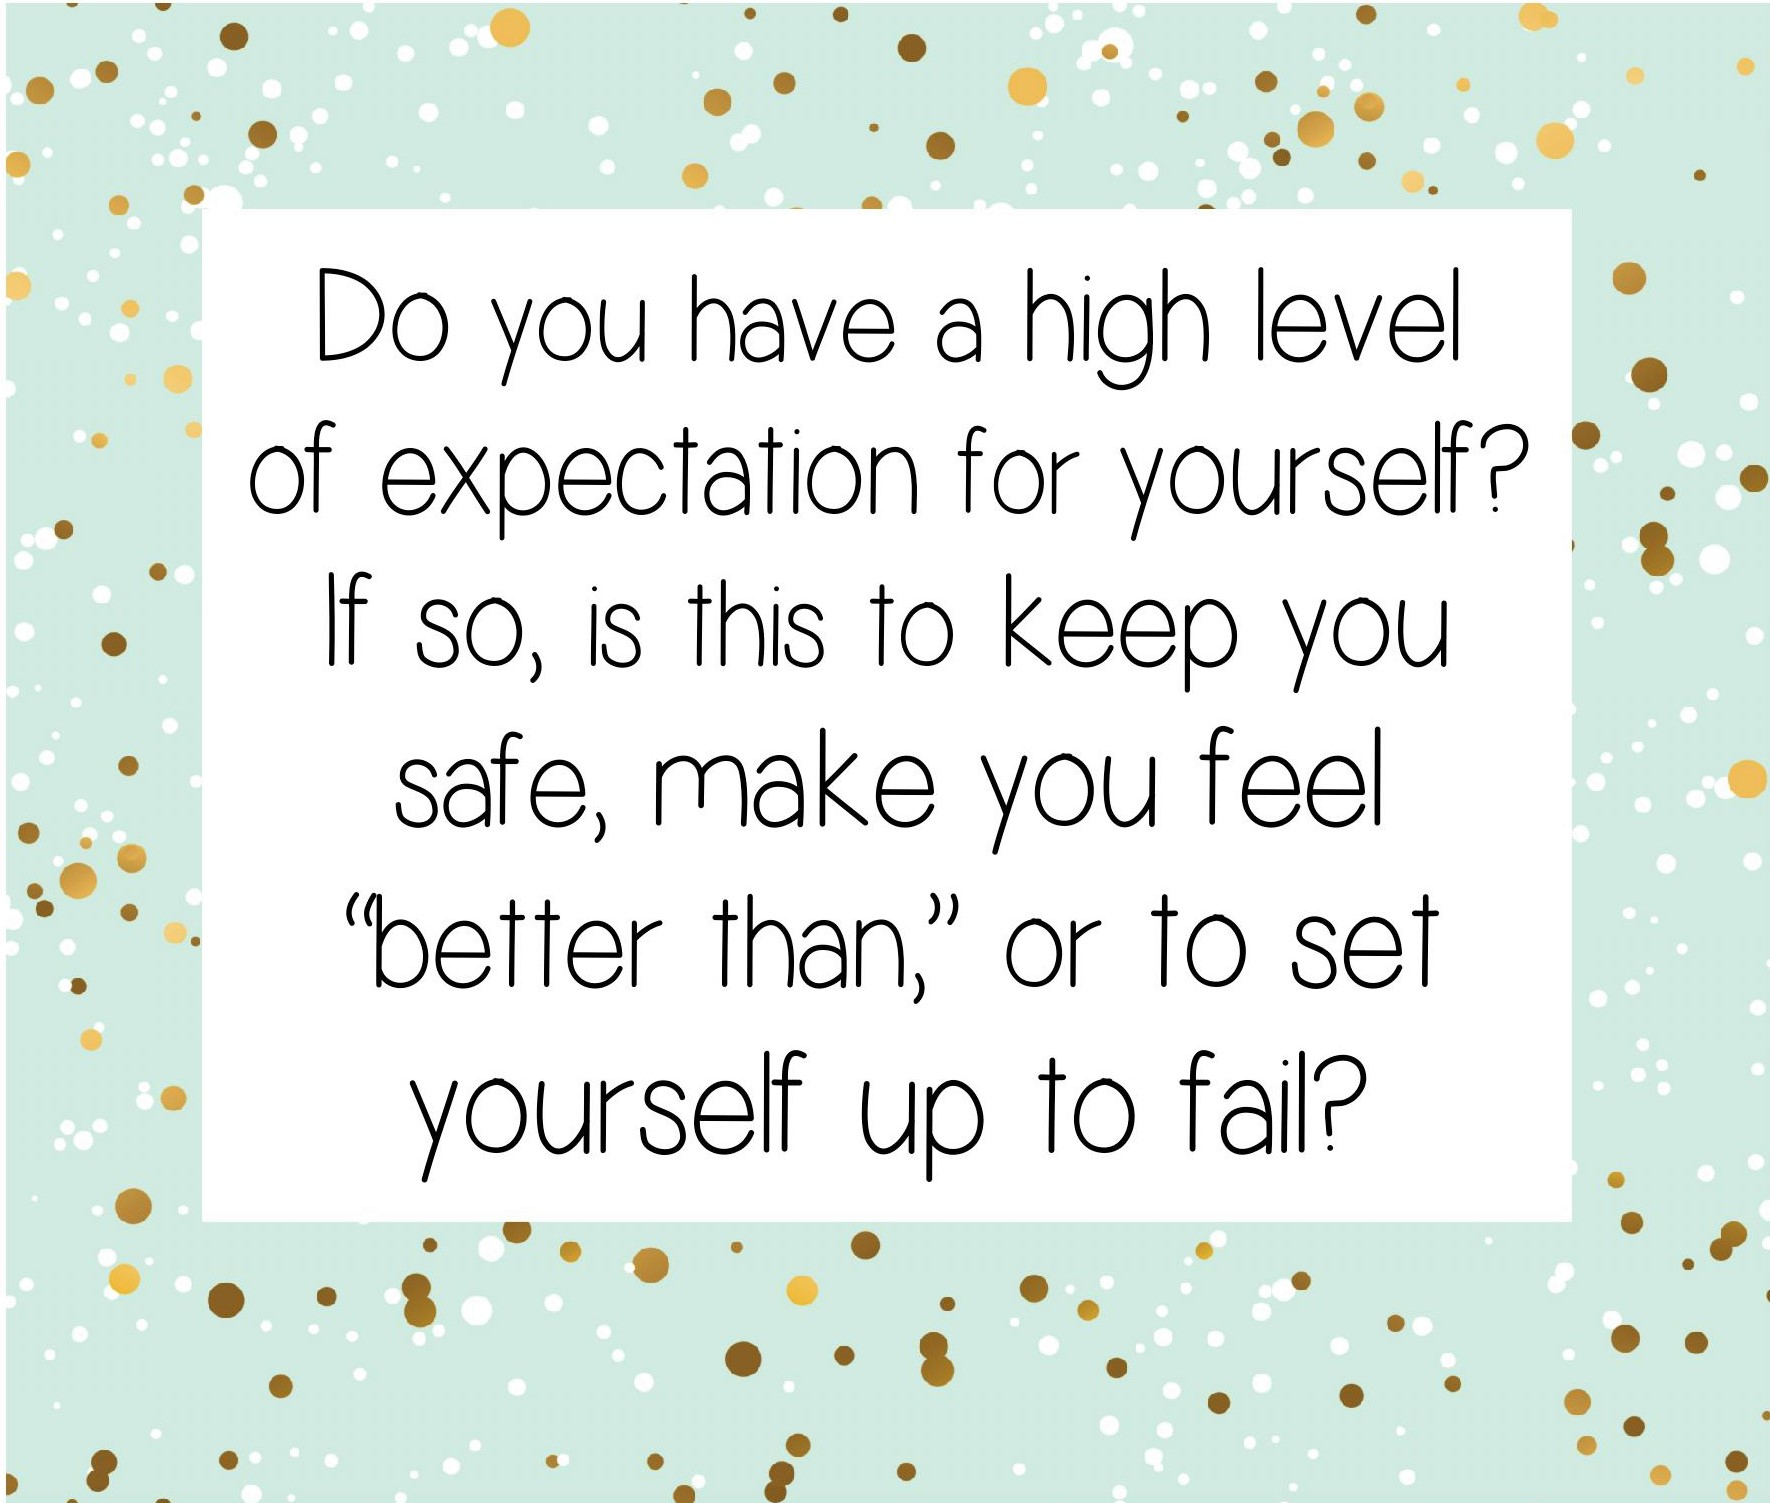 Do you have a high level of expectation question